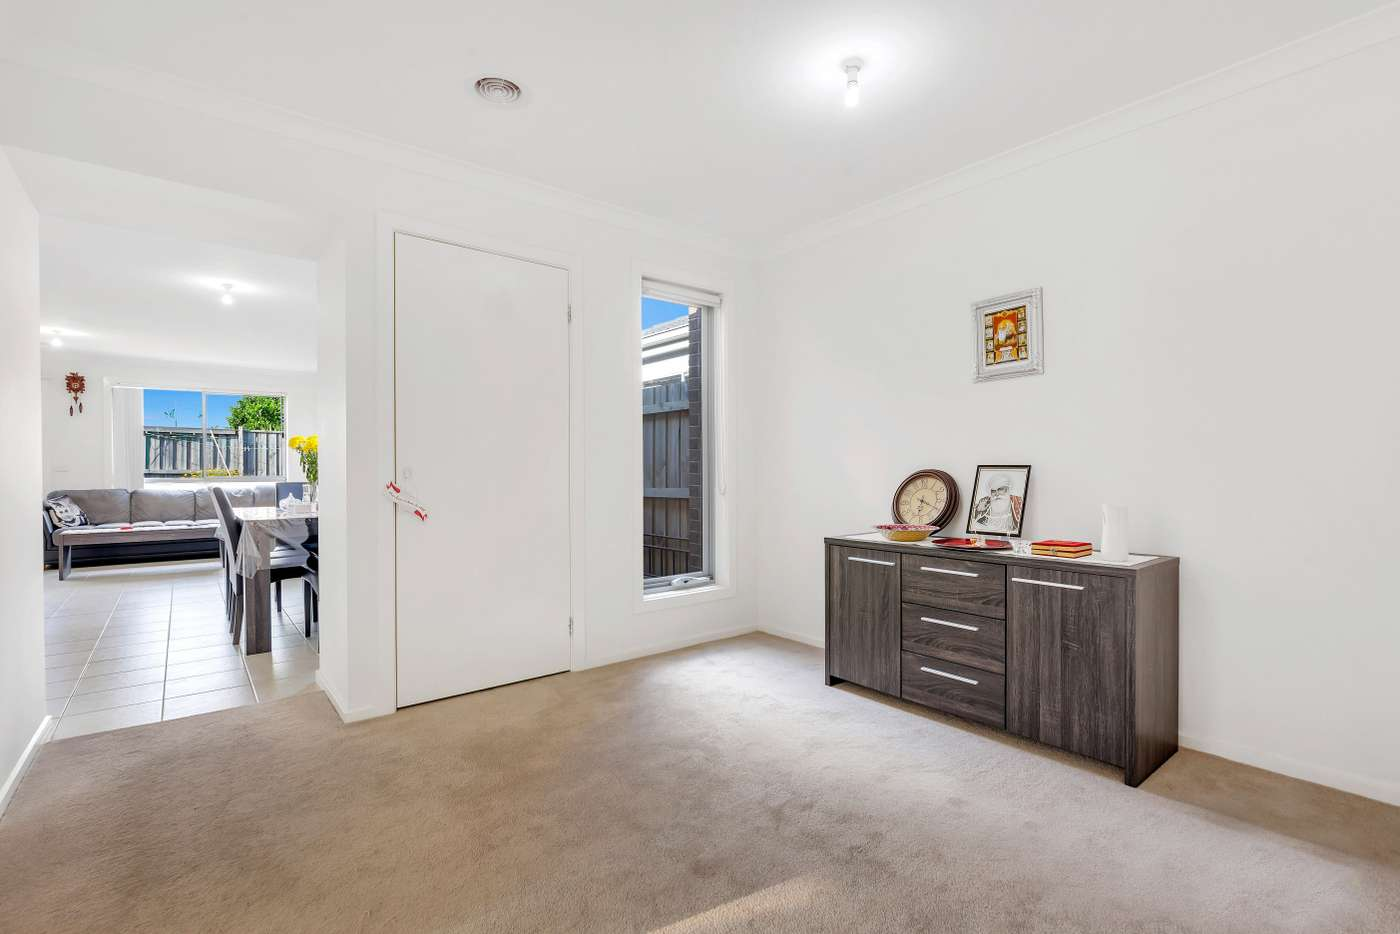 Sixth view of Homely house listing, 7A Maryann Way, Tarneit VIC 3029